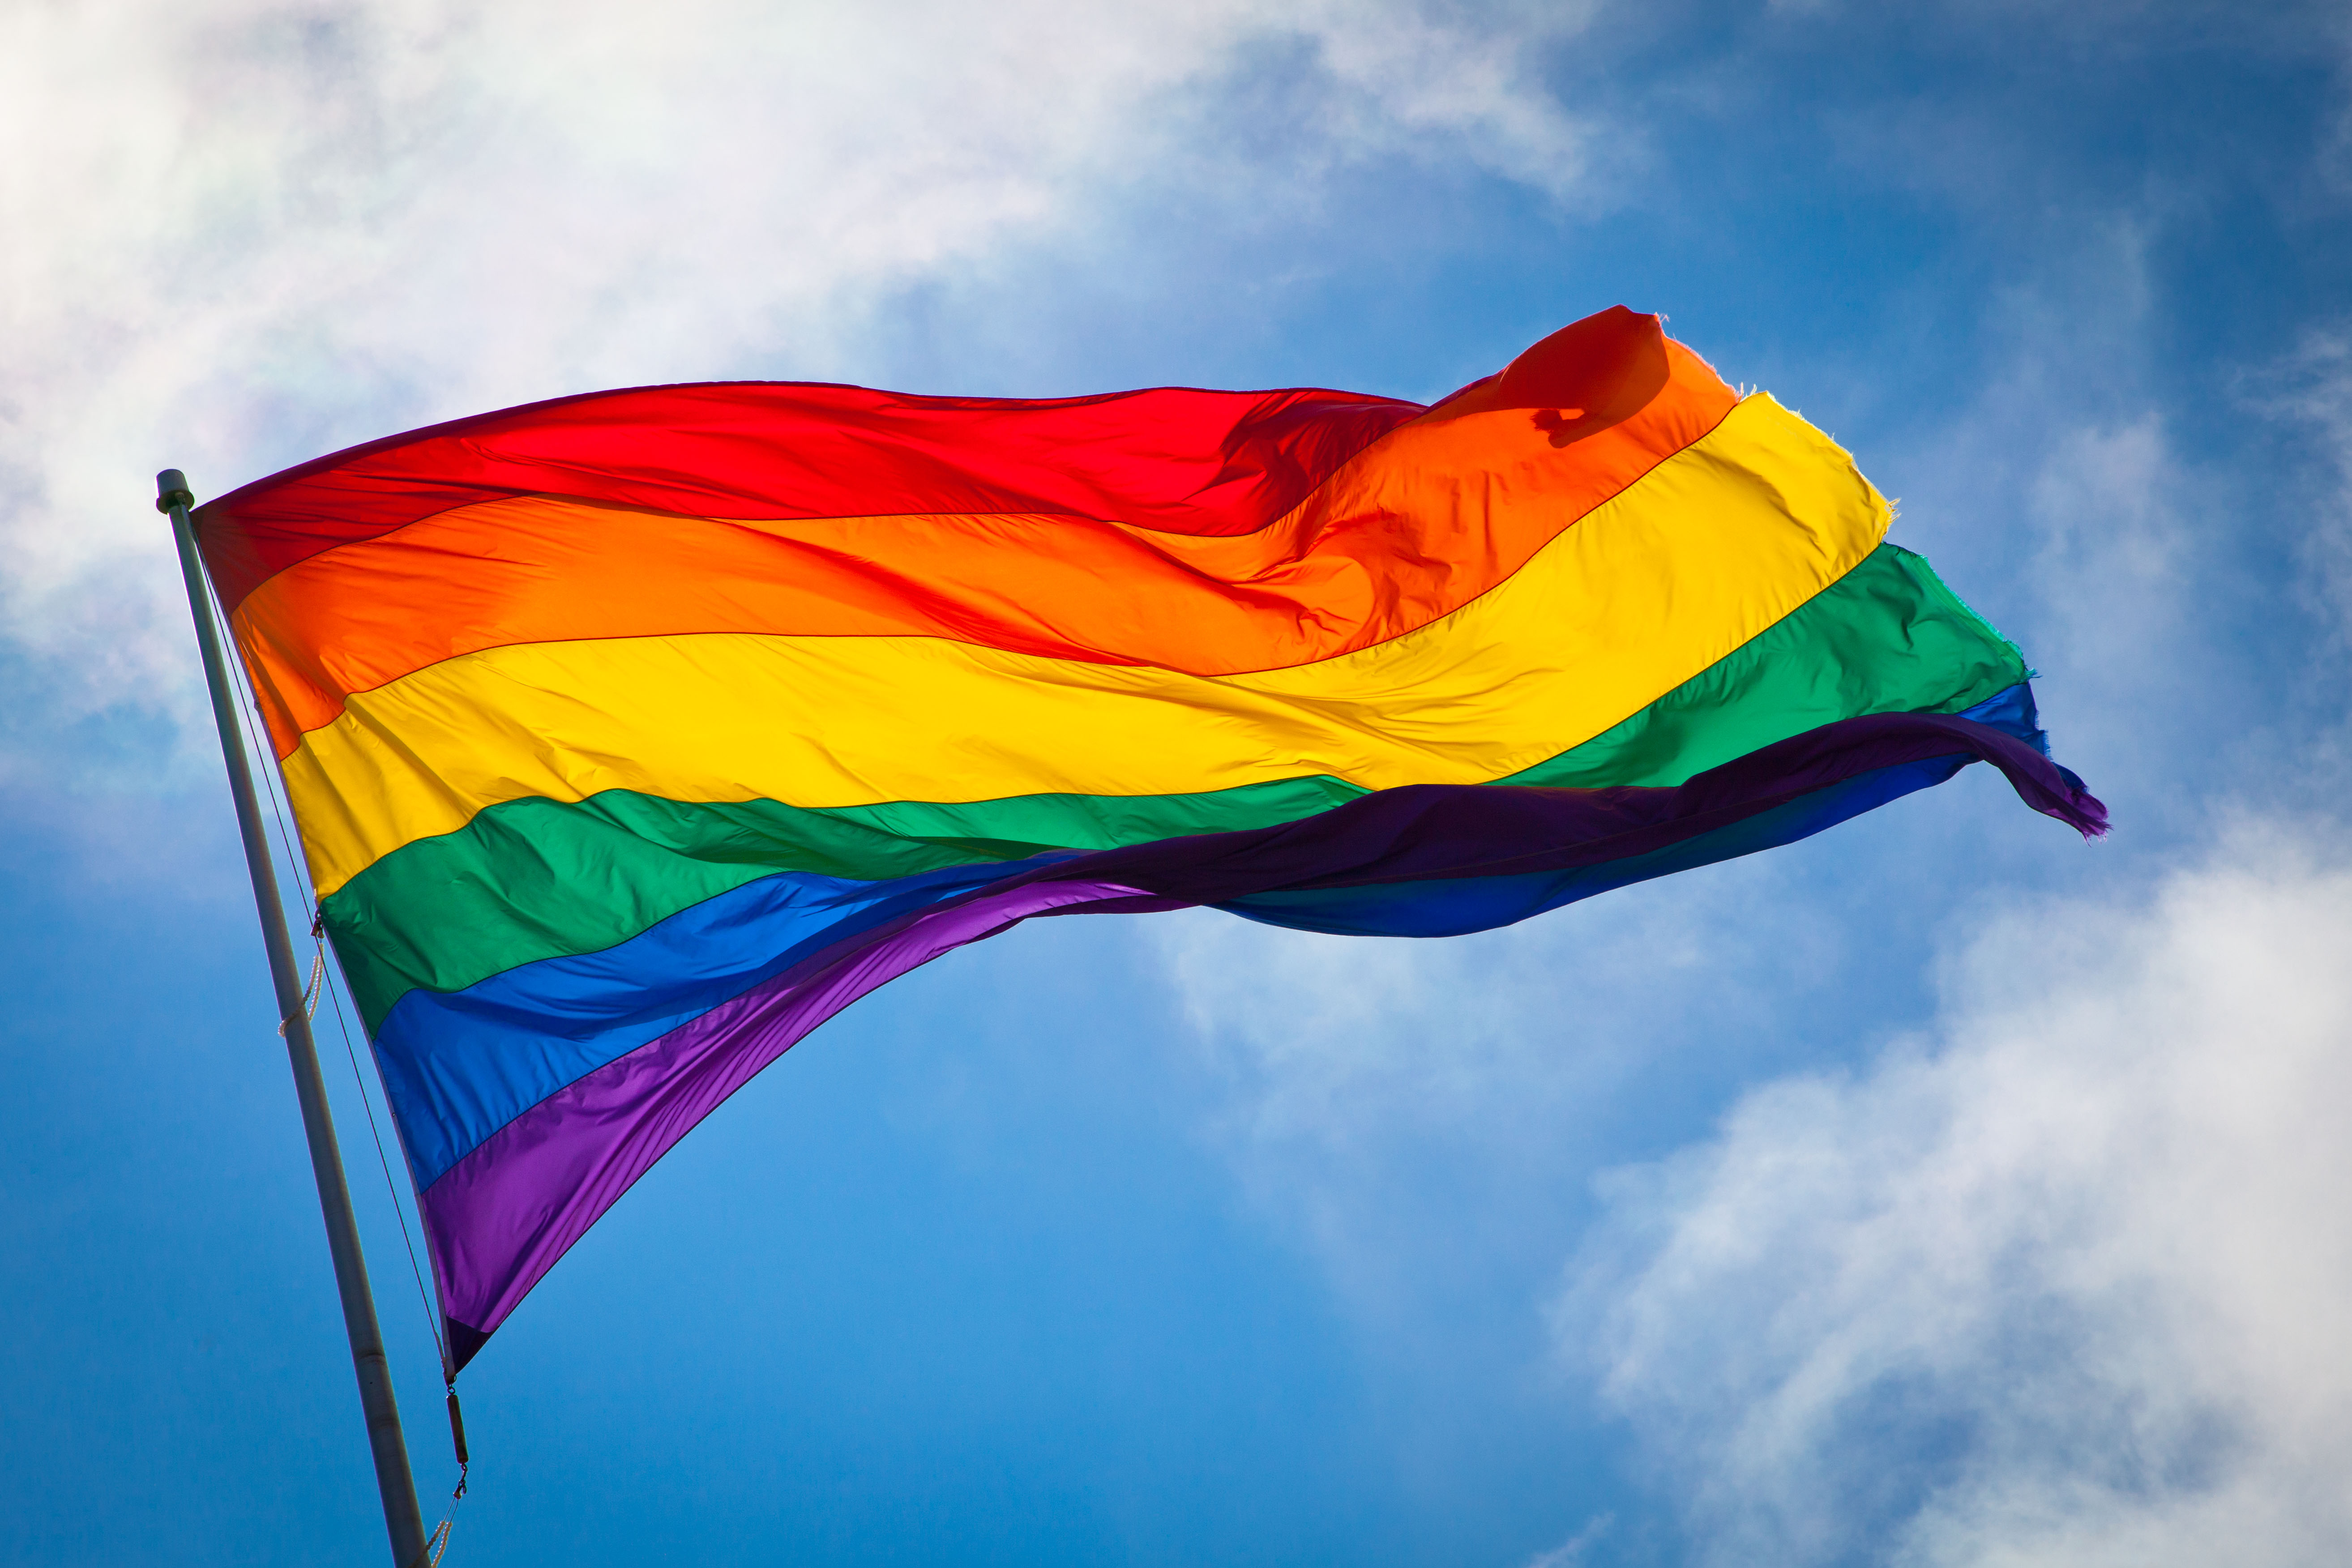 Show your colors at Pride this weekend! Image via Wikimedia Commons.